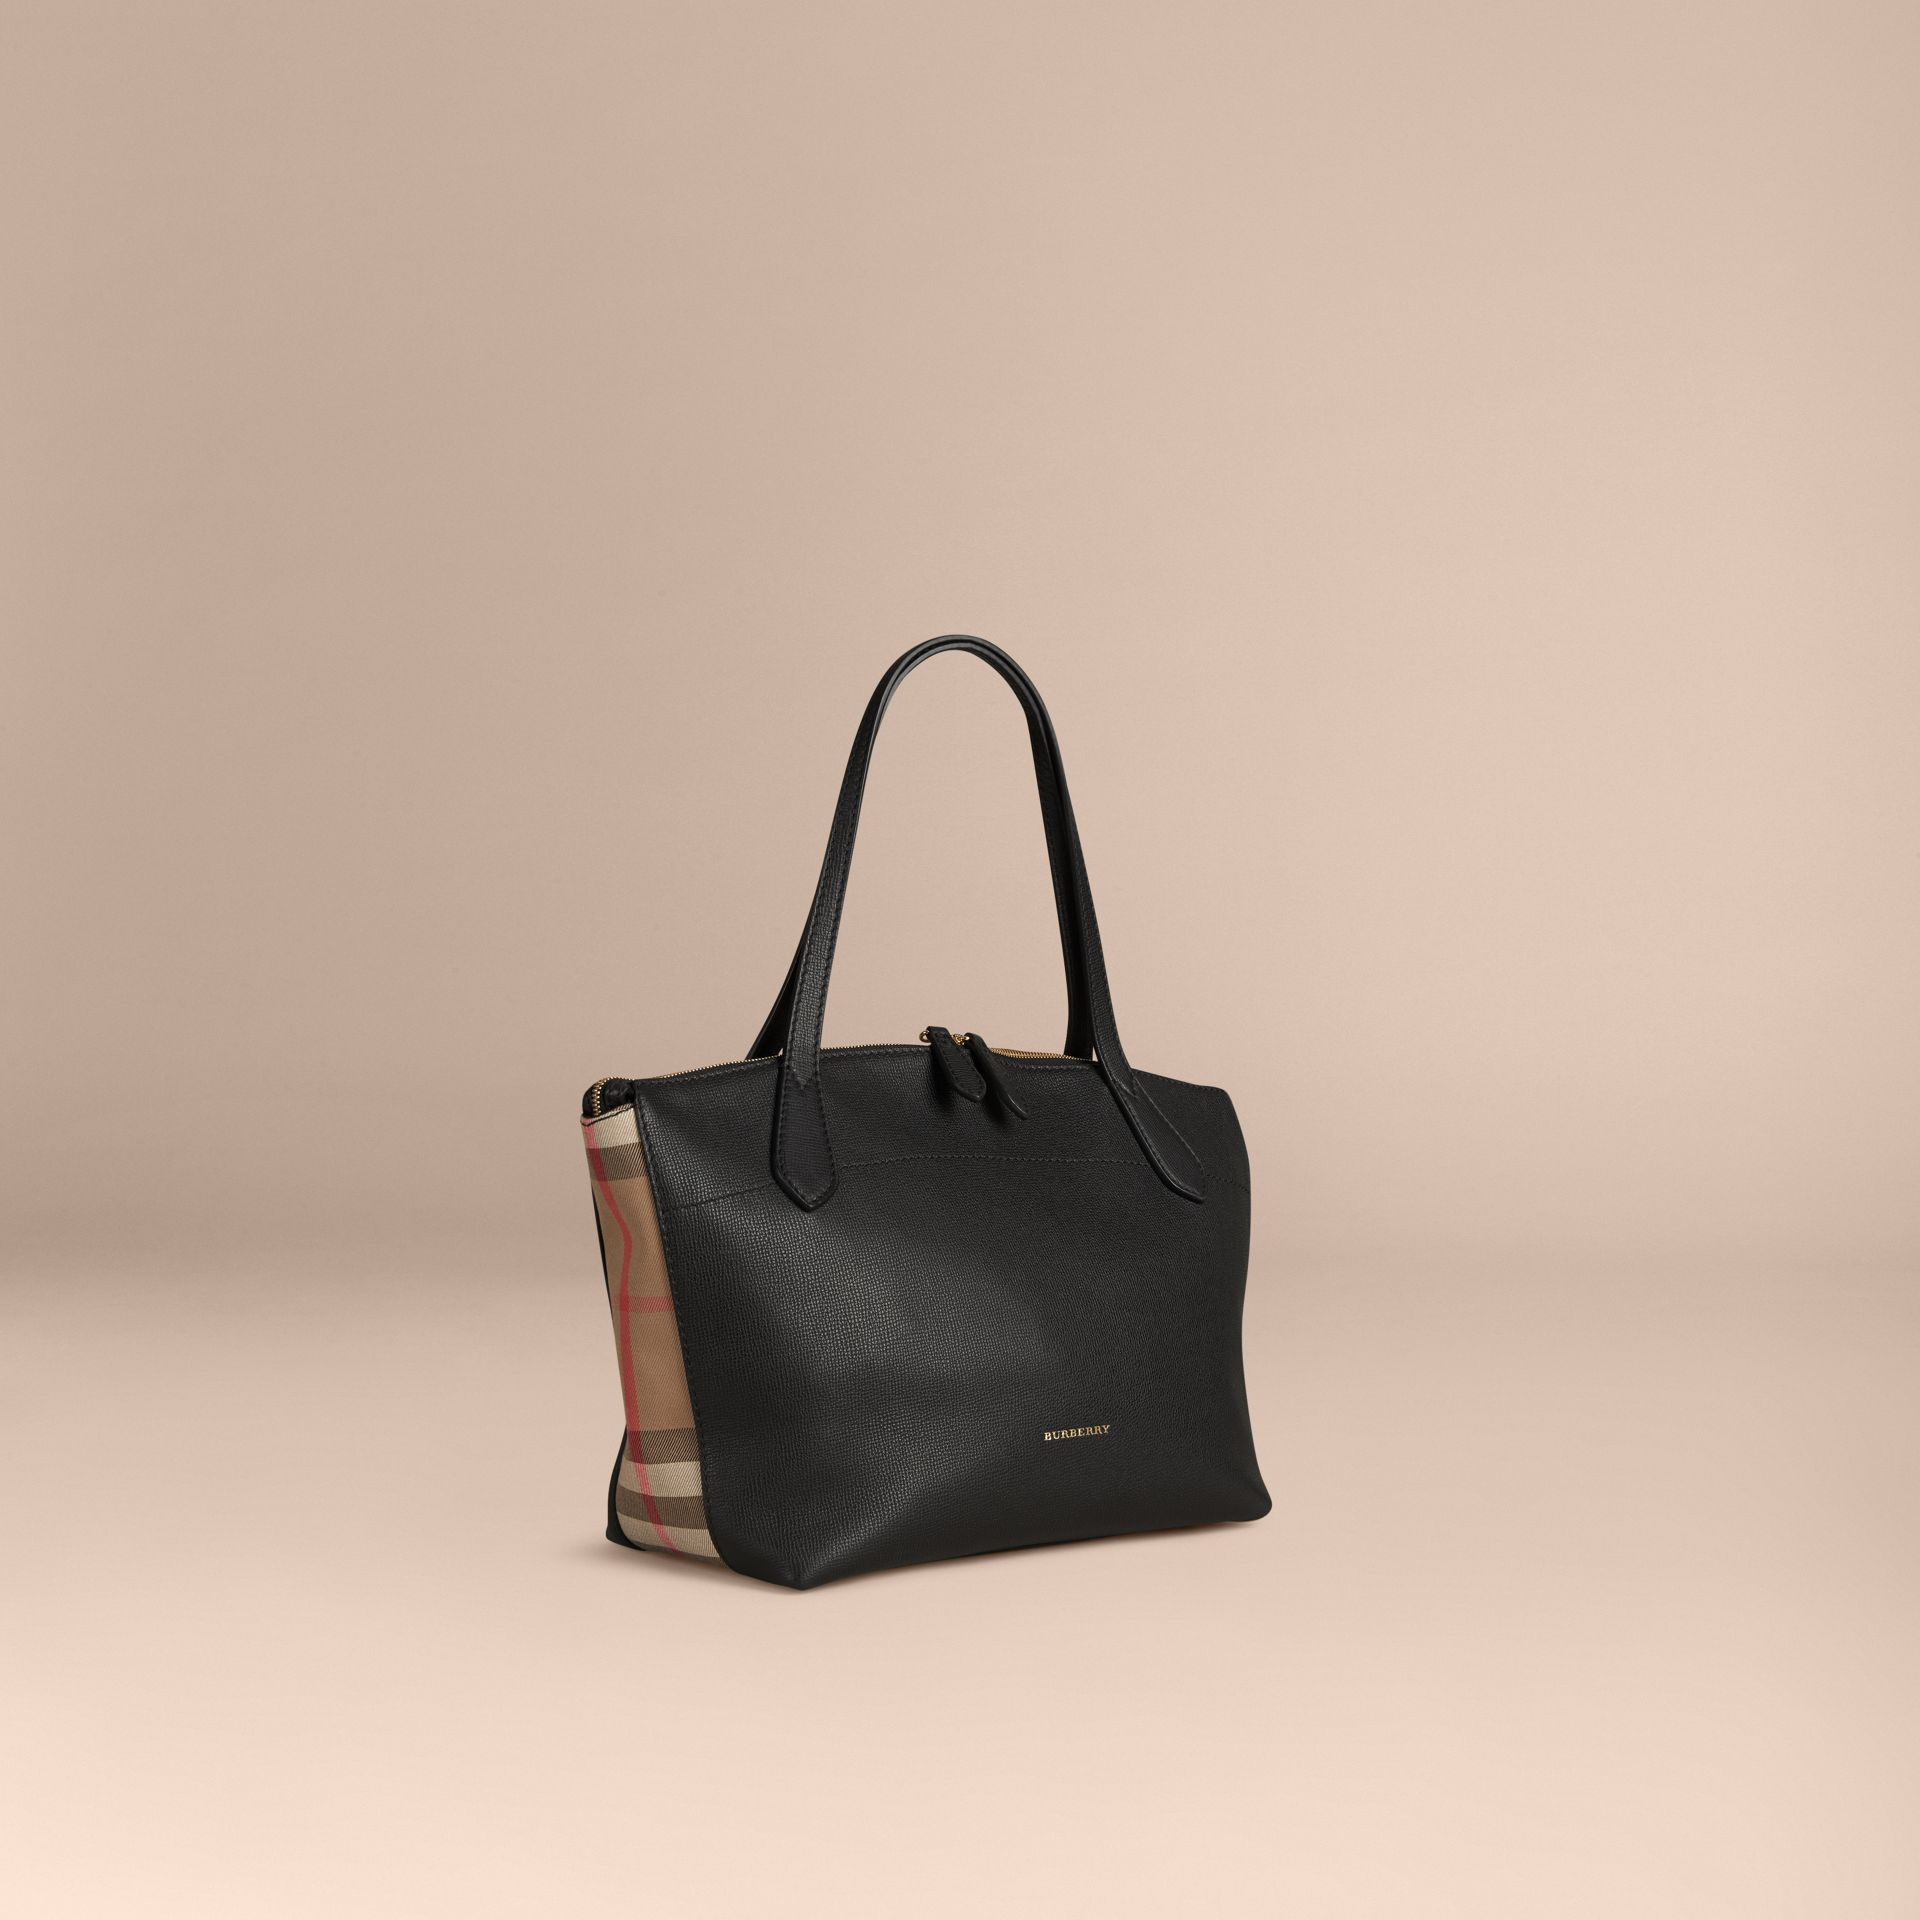 Sac tote medium en cuir et coton House check - Femme | Burberry - photo de la galerie 1